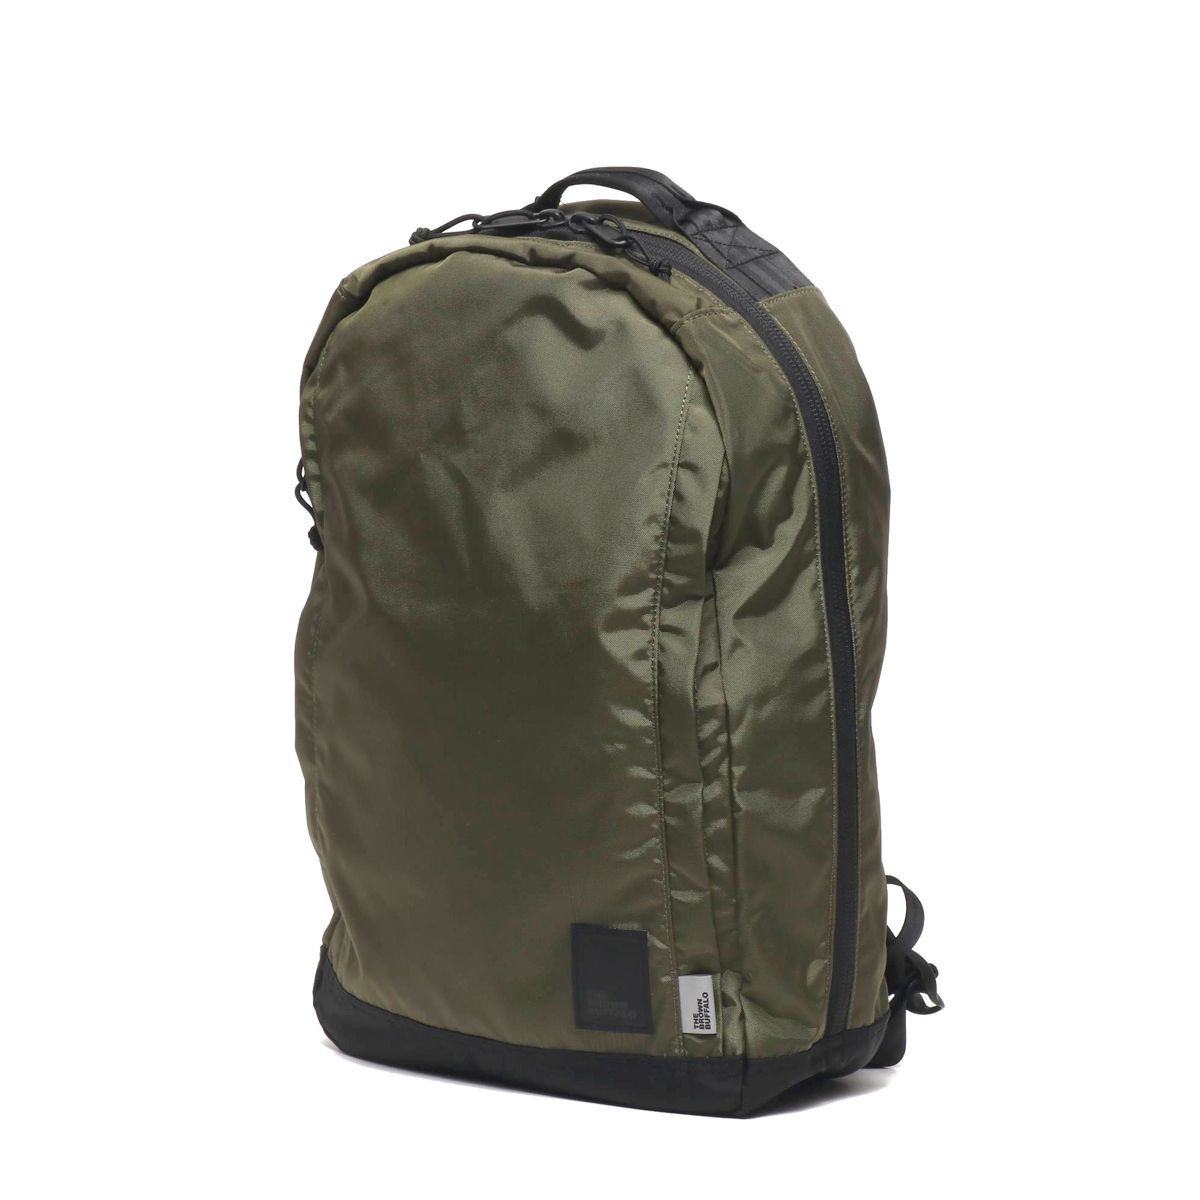 THE BROWN BUFFALO CONCEAL BACKPACK (ザブラウンバッファロー コンシェル バックパック)OLIVE【メンズ バックパック】19SP-I